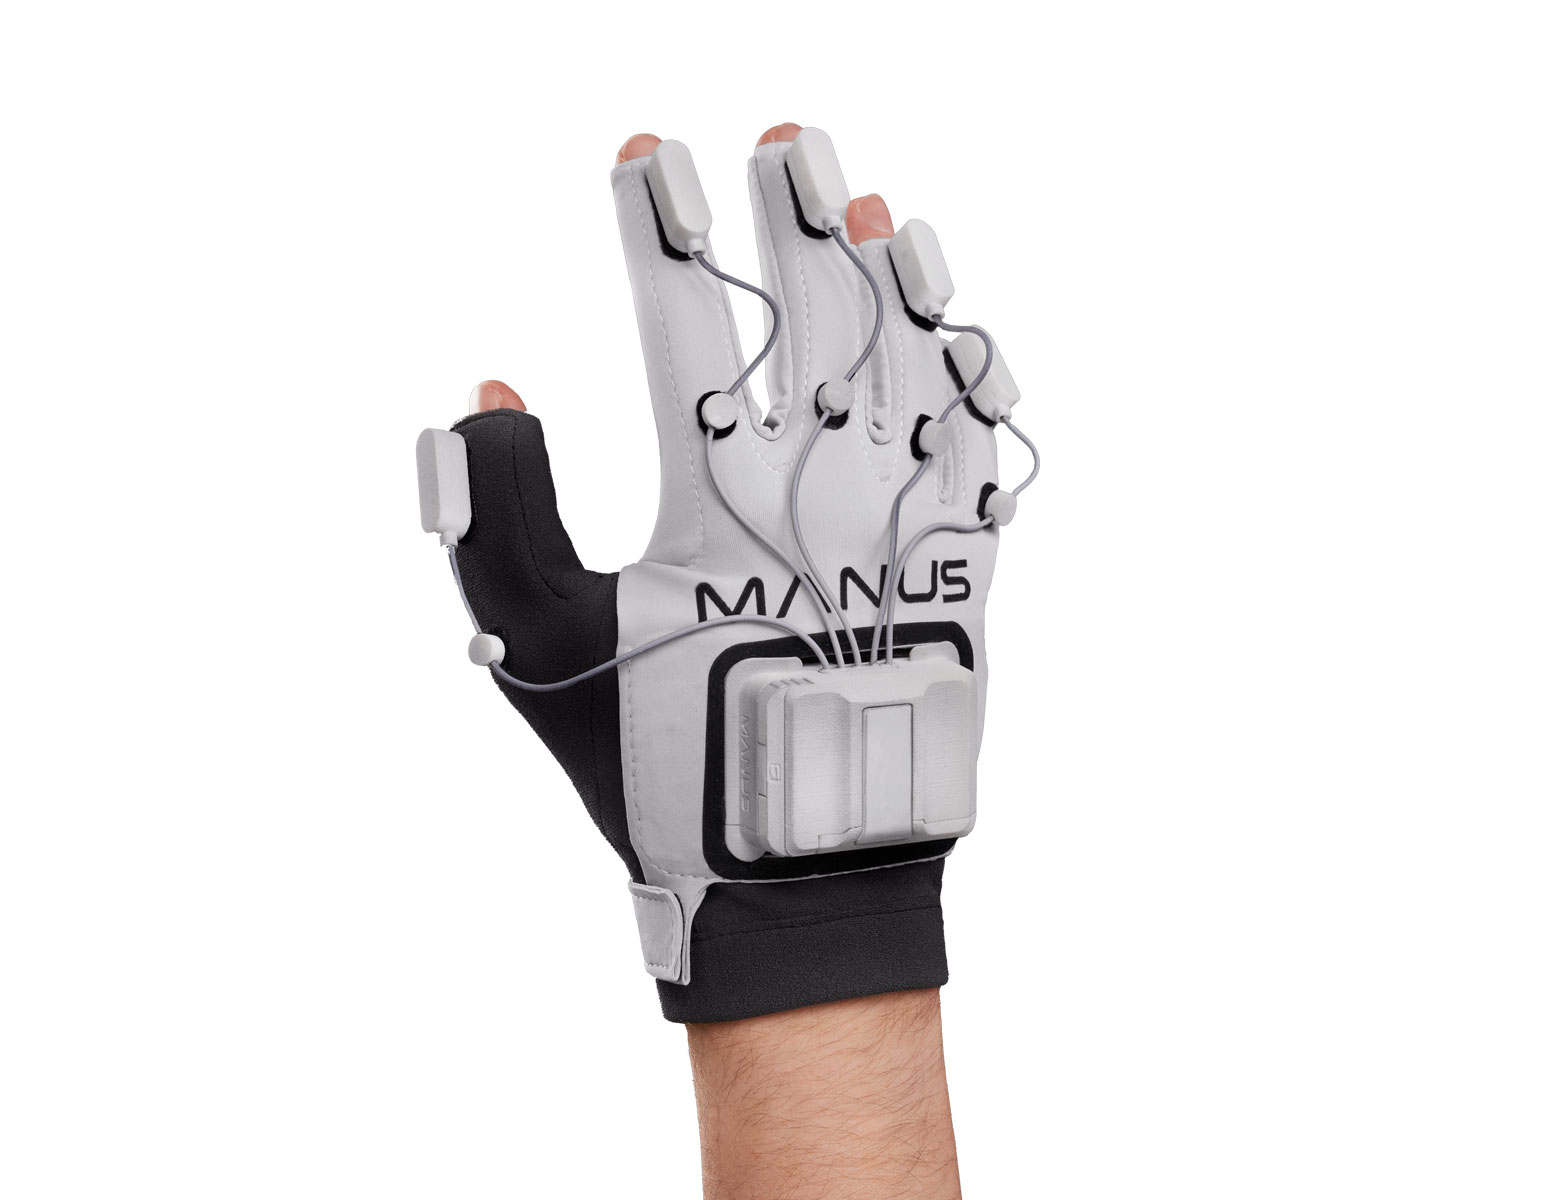 Haptic Gloves for Virtual Reality